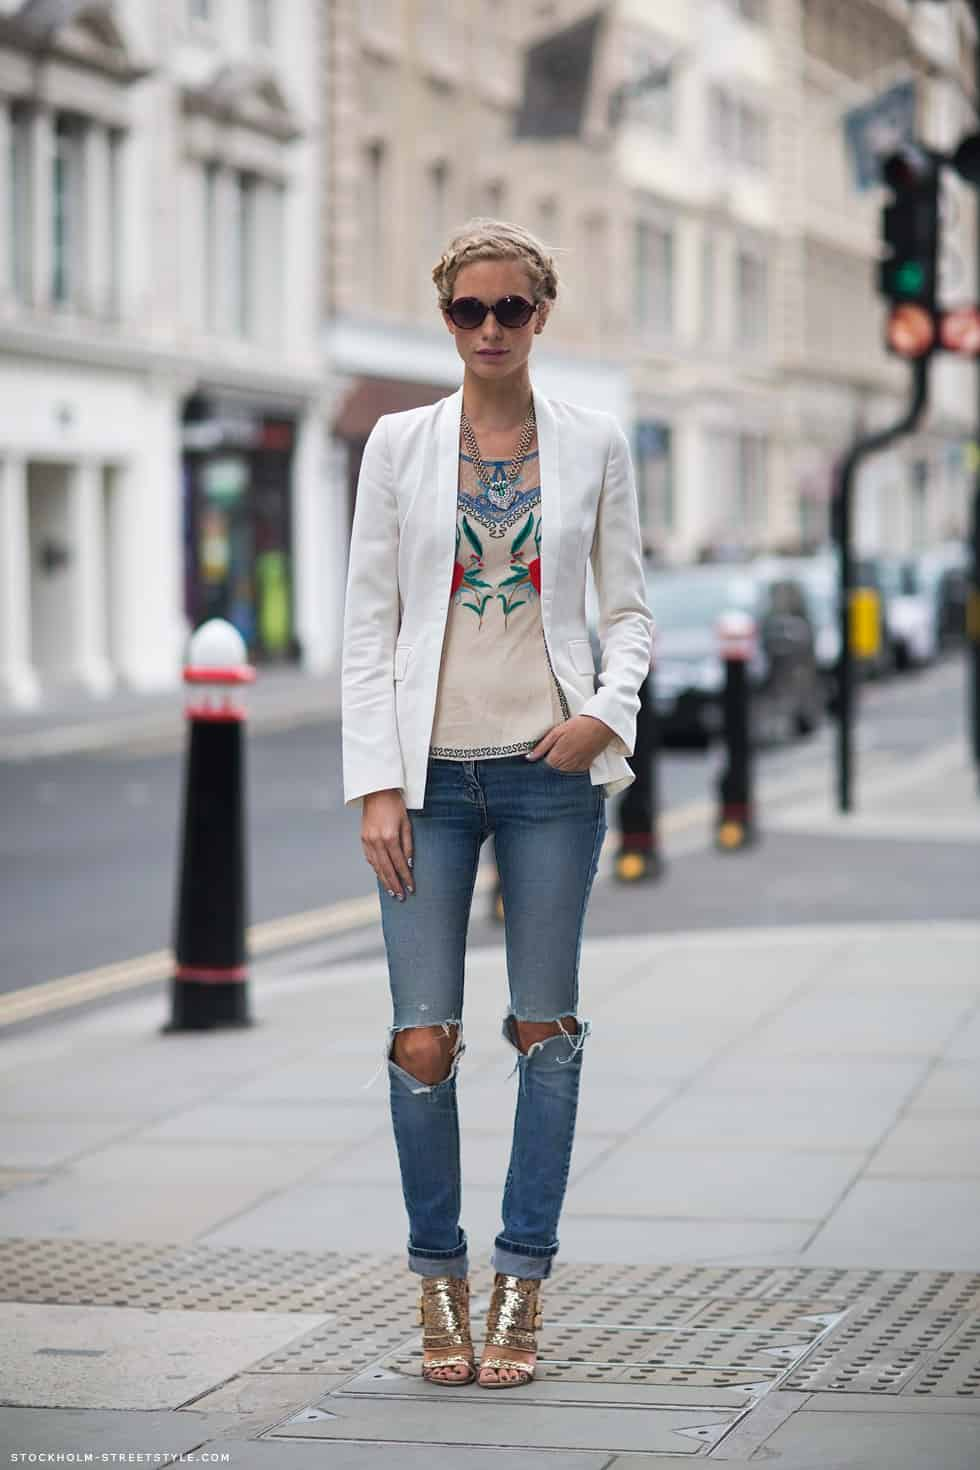 To flatter hips best, choose a tapered leg instead of a skinny one, like this pair with roomier thighs and less narrow ankles. Style: Pencil Sharp; sizes: 23 to 32; .